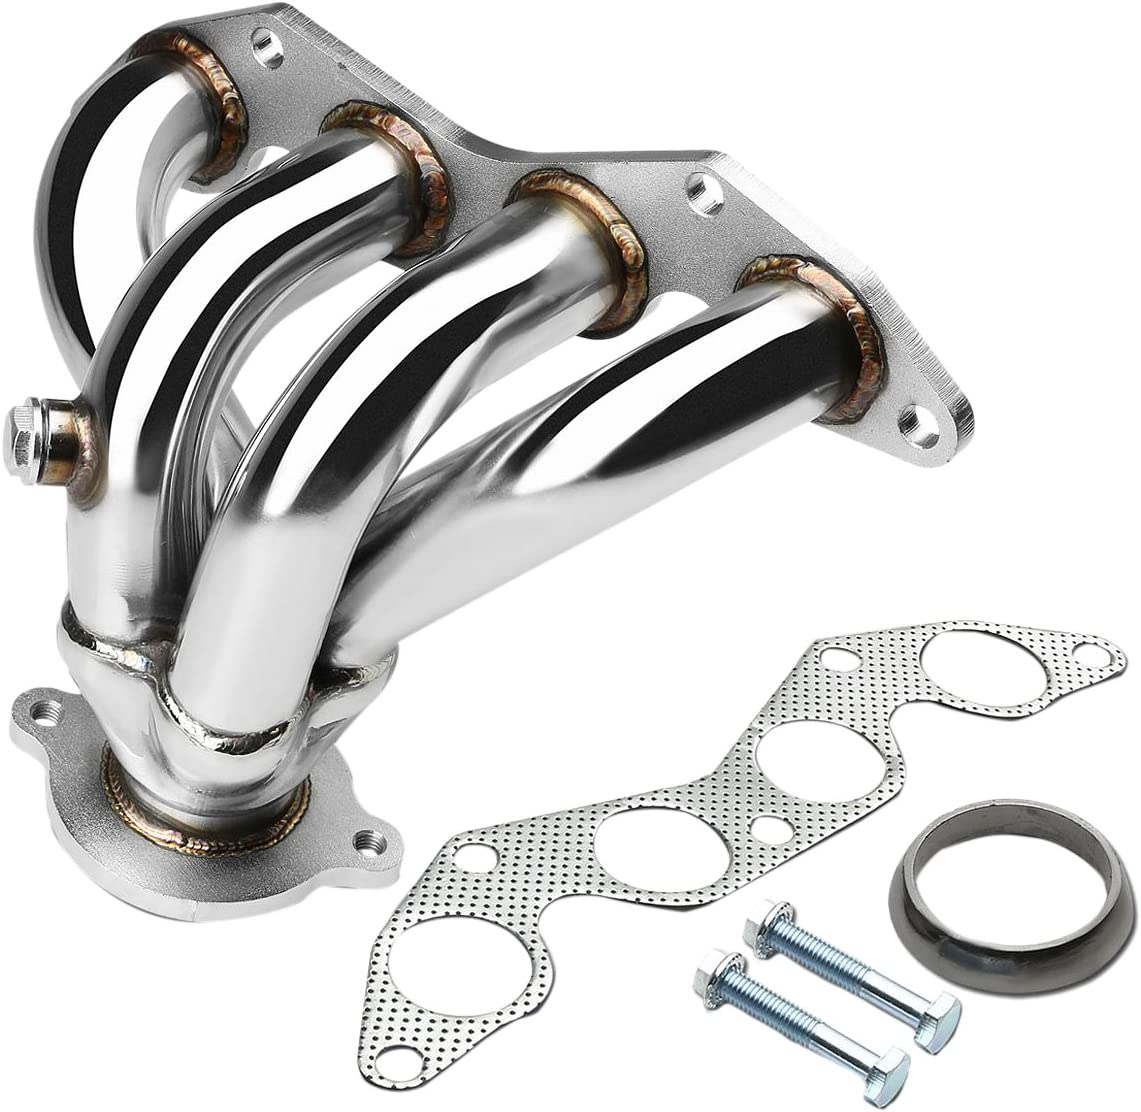 DNA motoring HDS-HC01EX Stainless Steel Exhaust Header Manifold